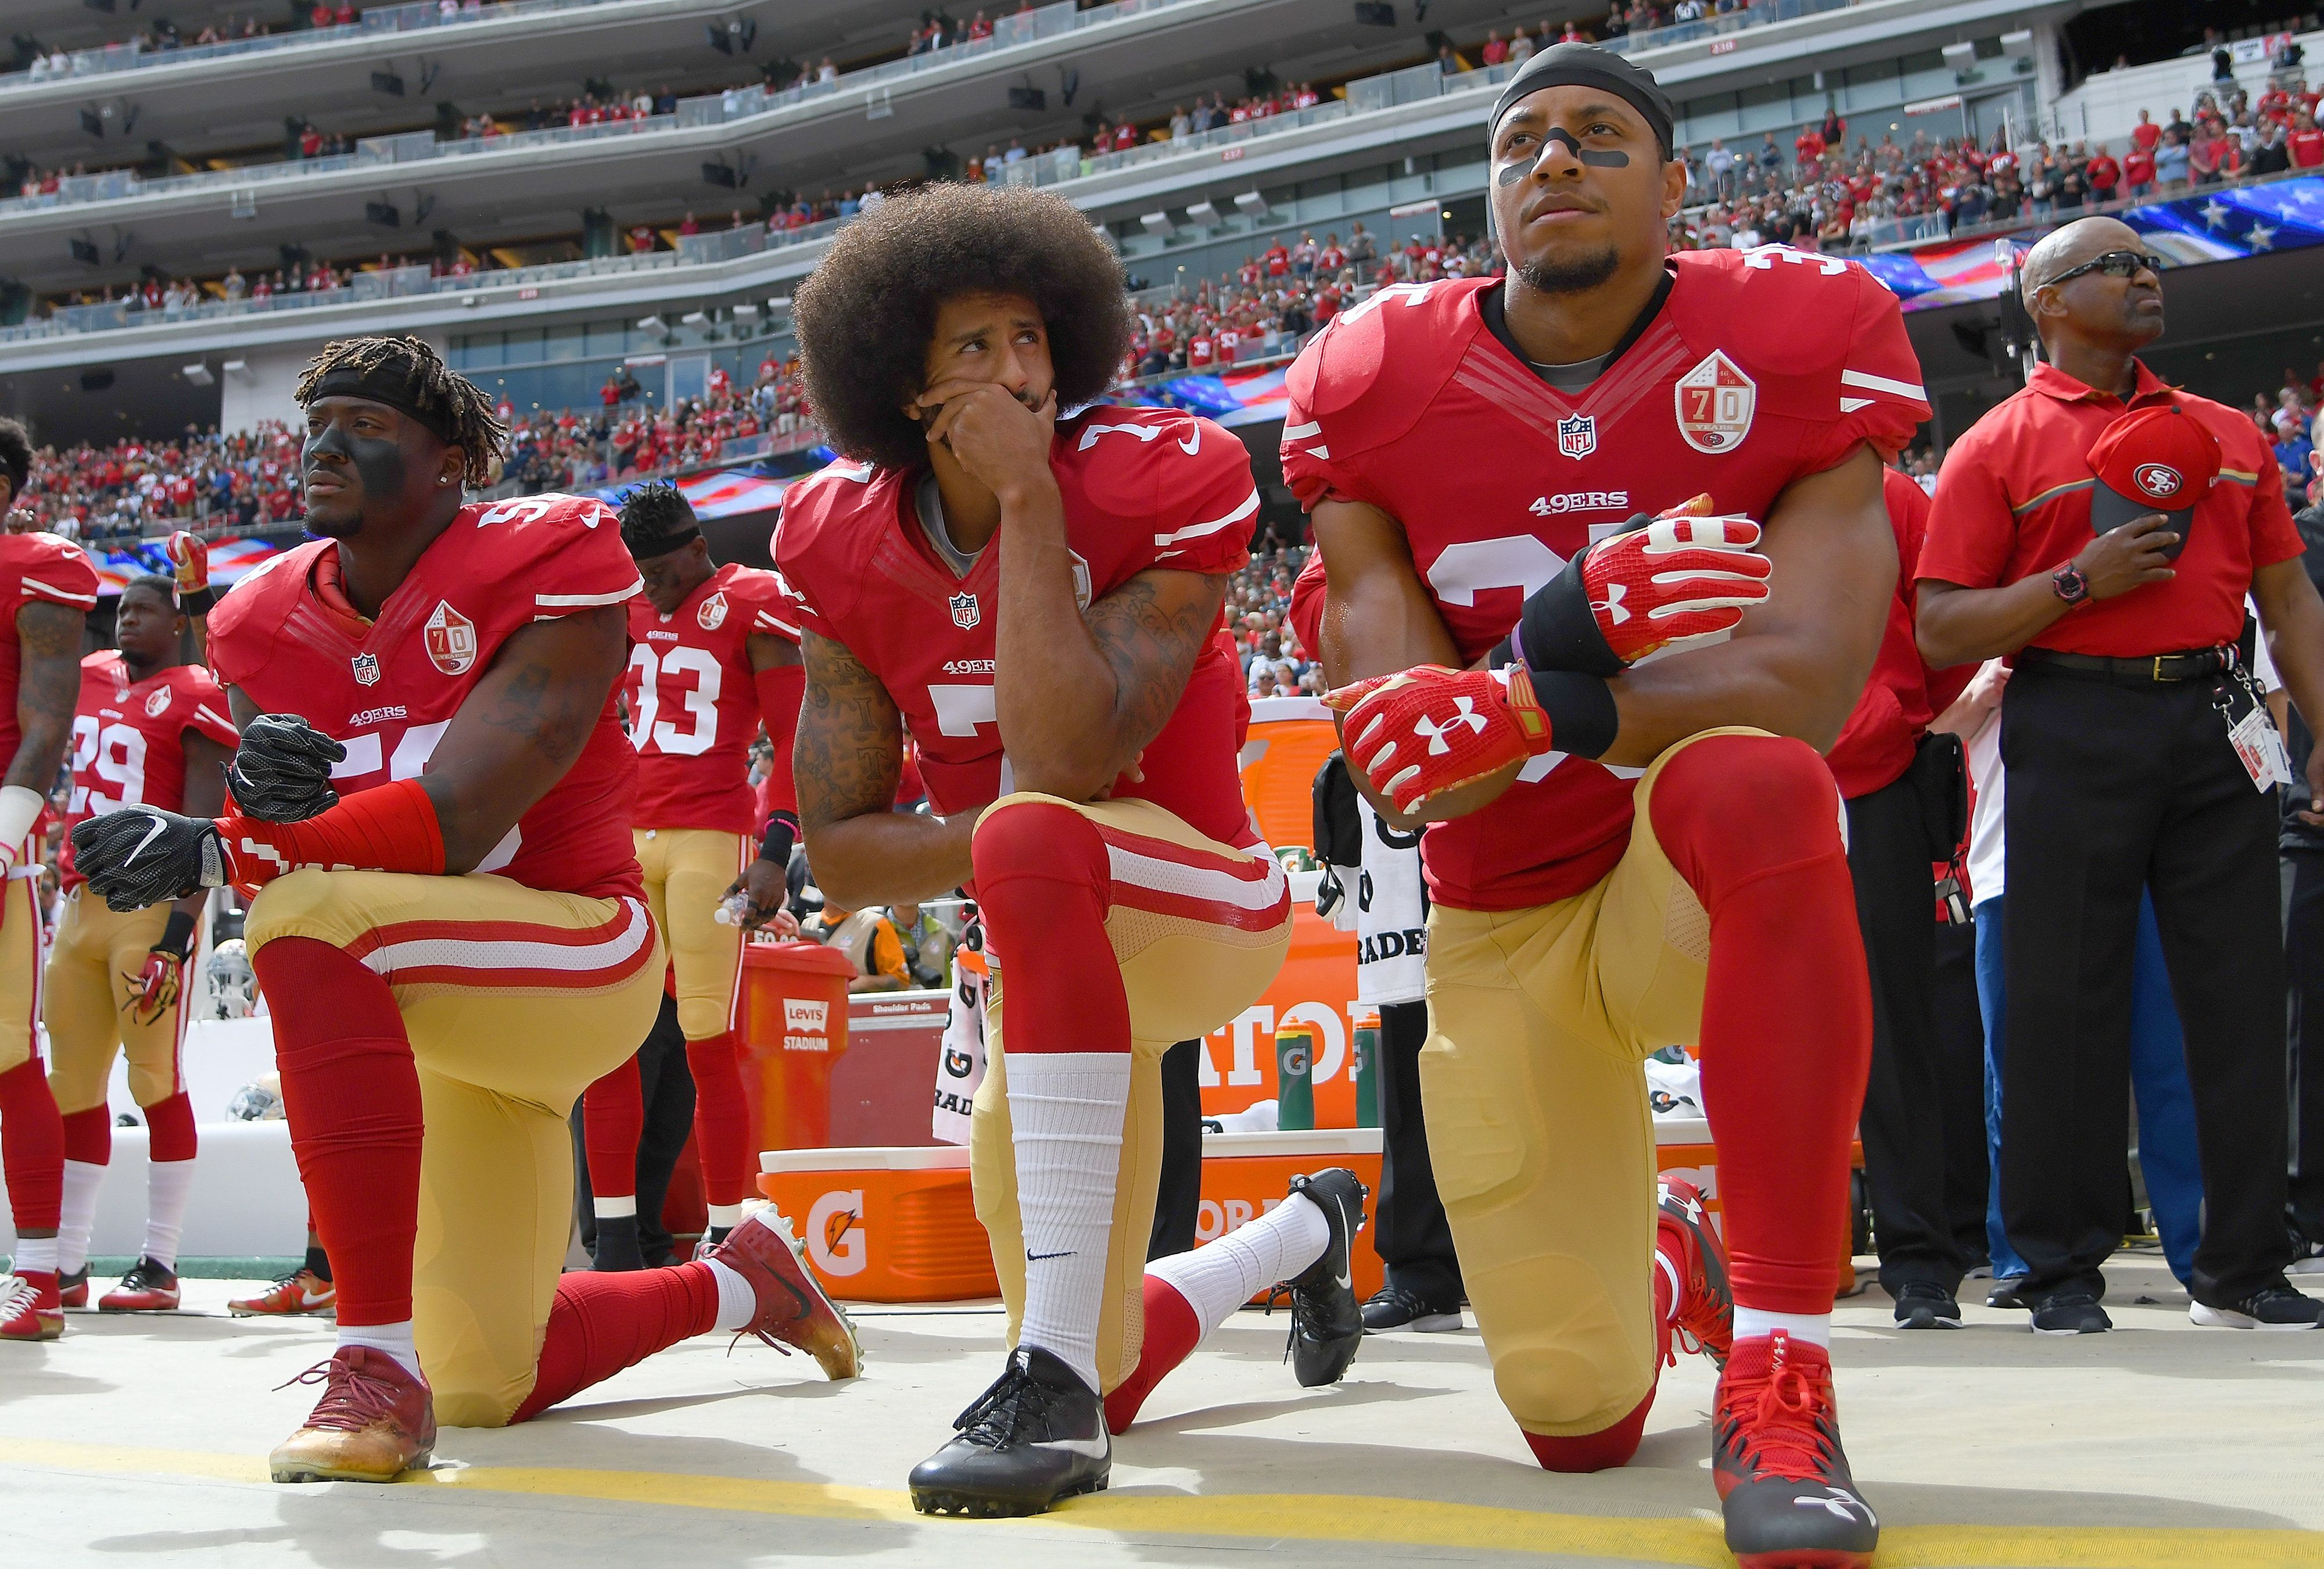 SANTA CLARA, CA - OCTOBER 02:  (L-R) Eli Harold #58, Colin Kaepernick #7 and Eric Reid #35 of the San Francisco 49ers kneel on the sideline during the National Anthem prior to the game against the Dallas Cowboys at Levi's Stadium on October 2, 2016 in Santa Clara, California.  (Photo by Thearon W. Henderson/Getty Images)